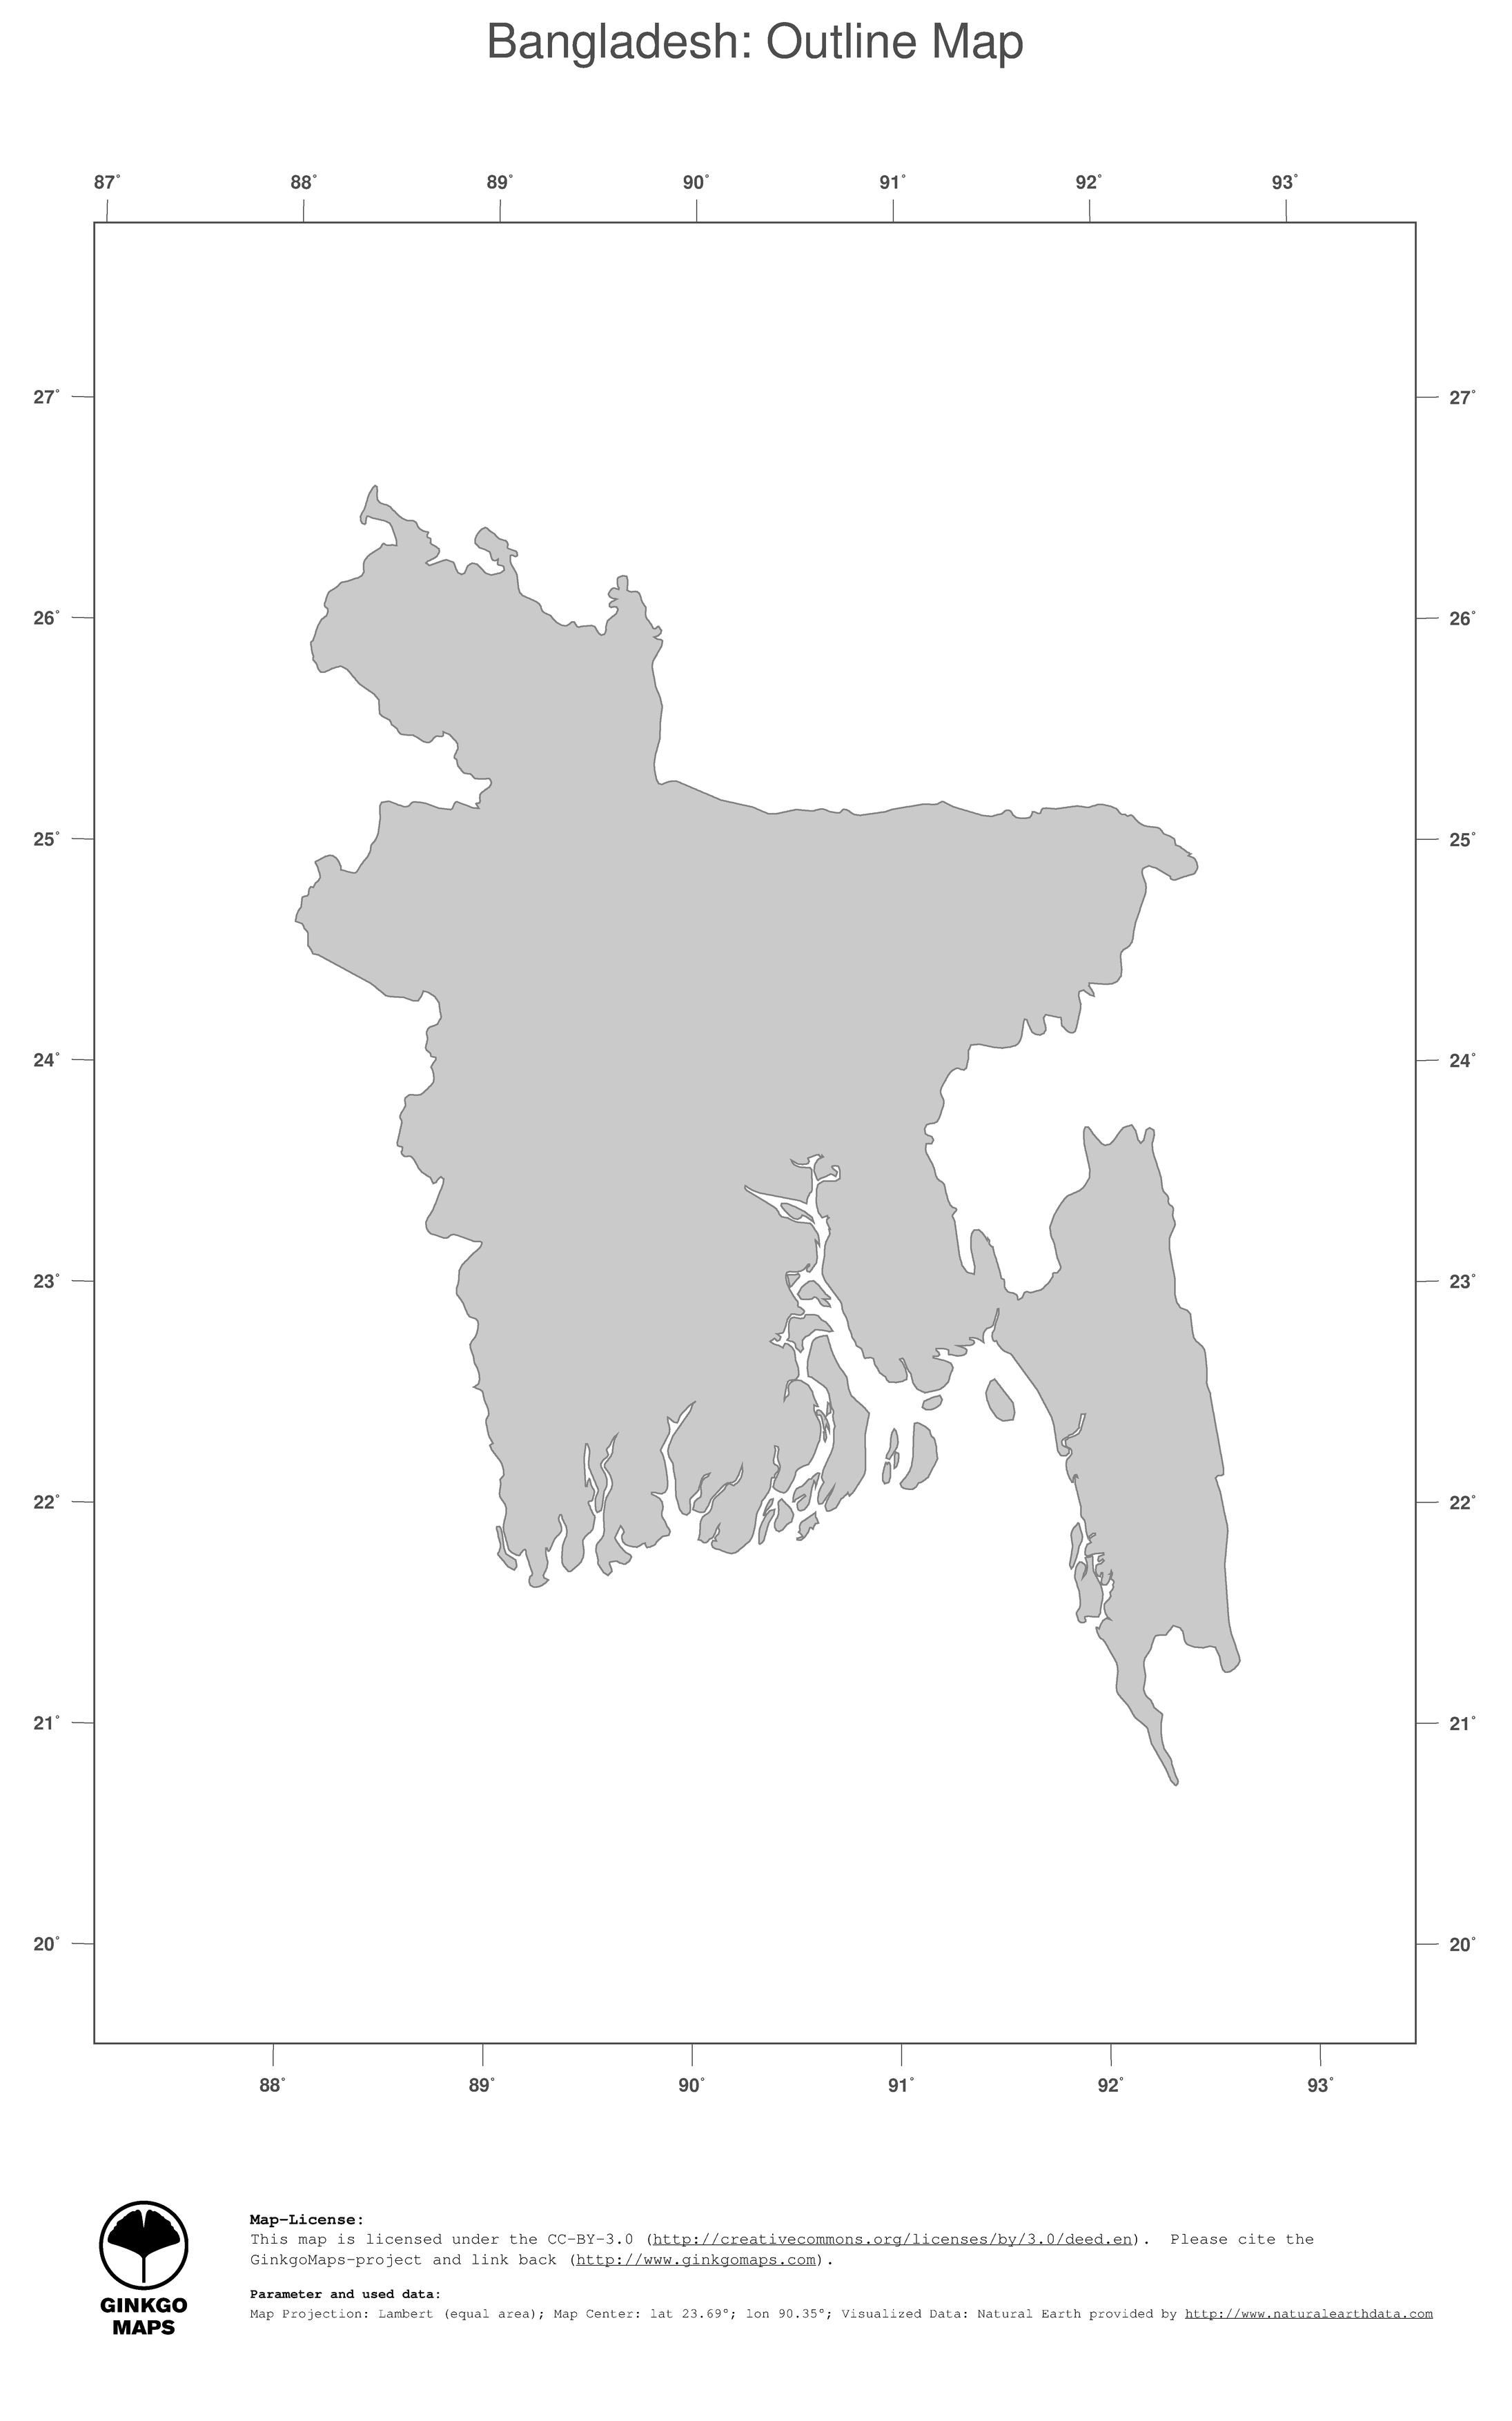 Bangladesh On Map Of Asia.Map Bangladesh Ginkgomaps Continent Asia Region Bangladesh